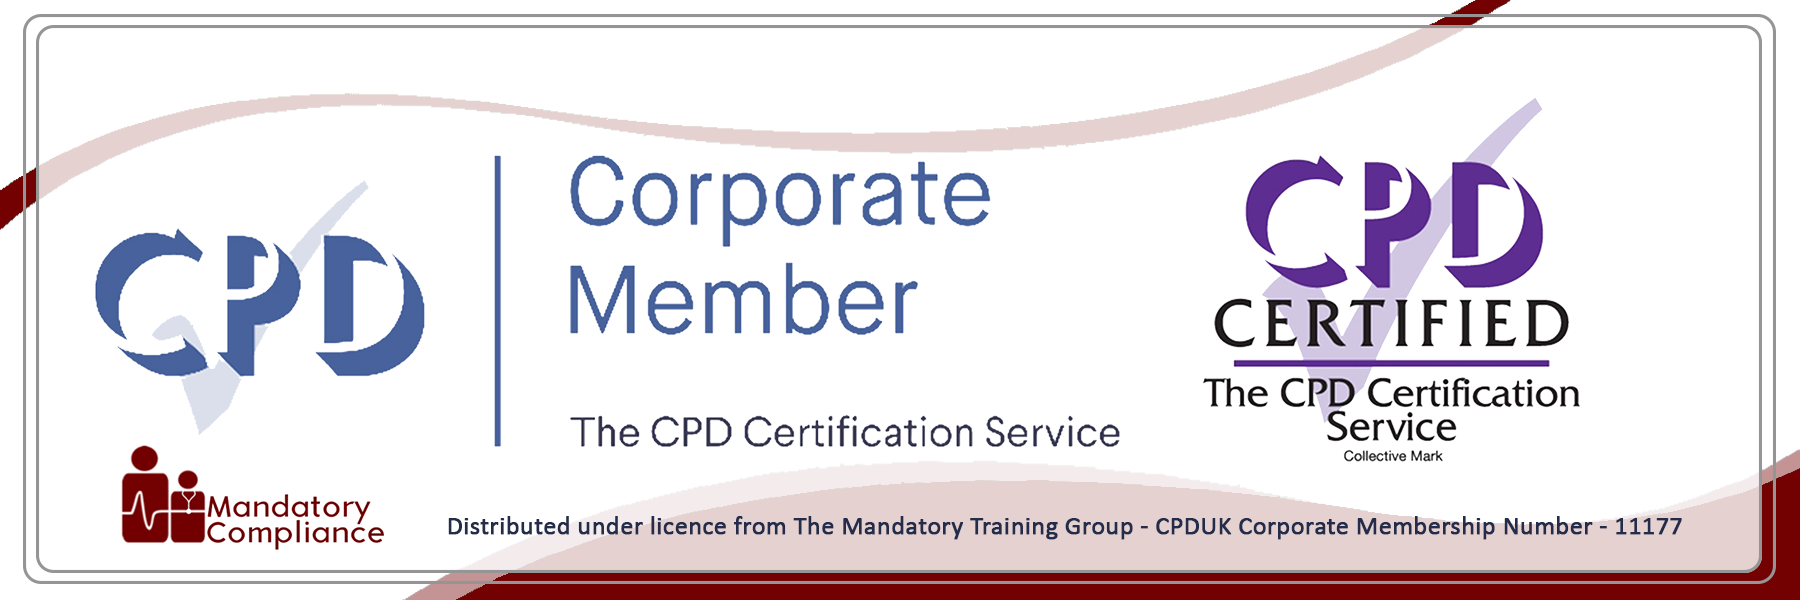 Team Building for Managers - Online Training Course - CPD Accredited - Mandatory Compliance UK -